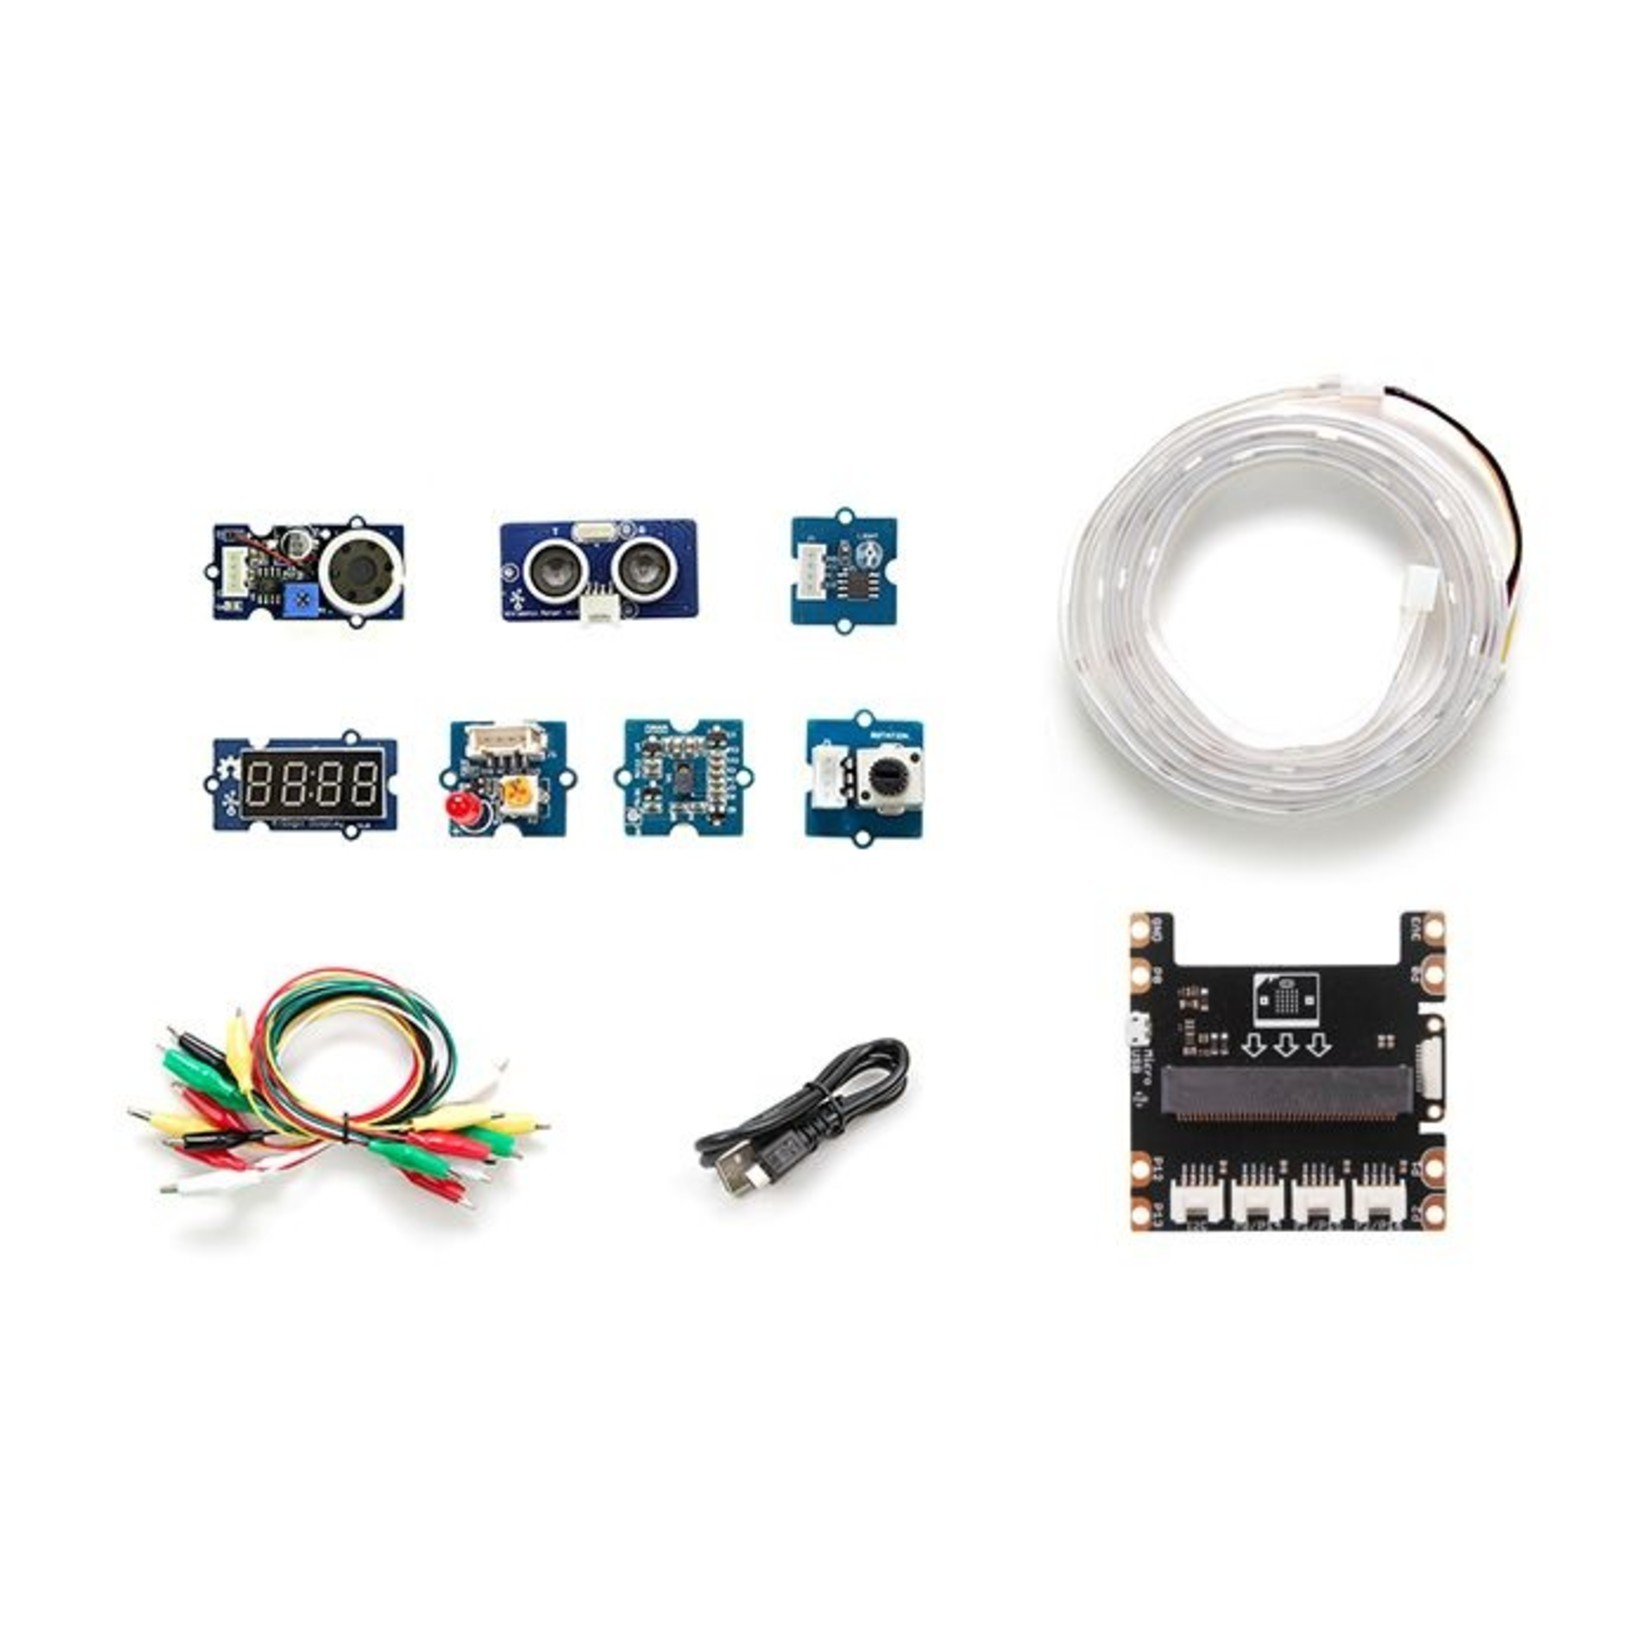 Seeed Grove Inventor Kit for micro:bit